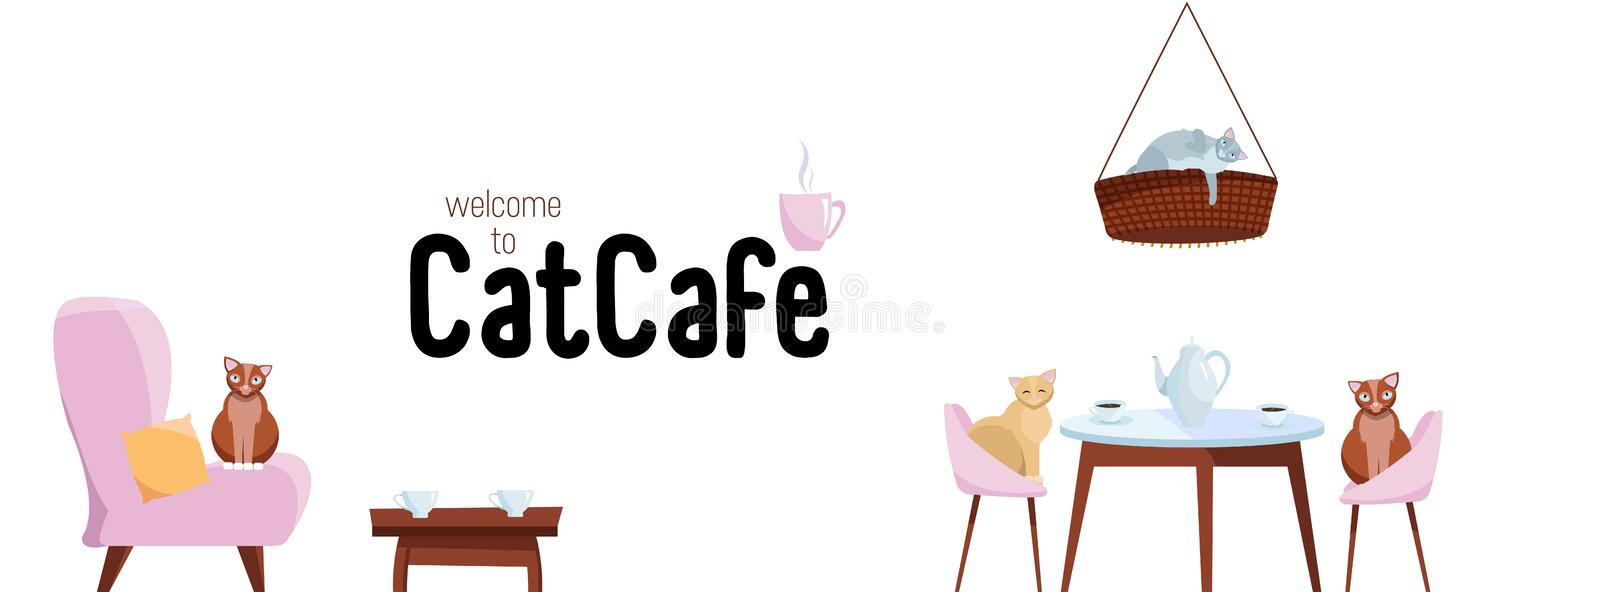 Facebook Cover Web Banner Social Media Design Welcome to cat cafe Template Vector on white background.Cats sit on stylish chairs stock illustration